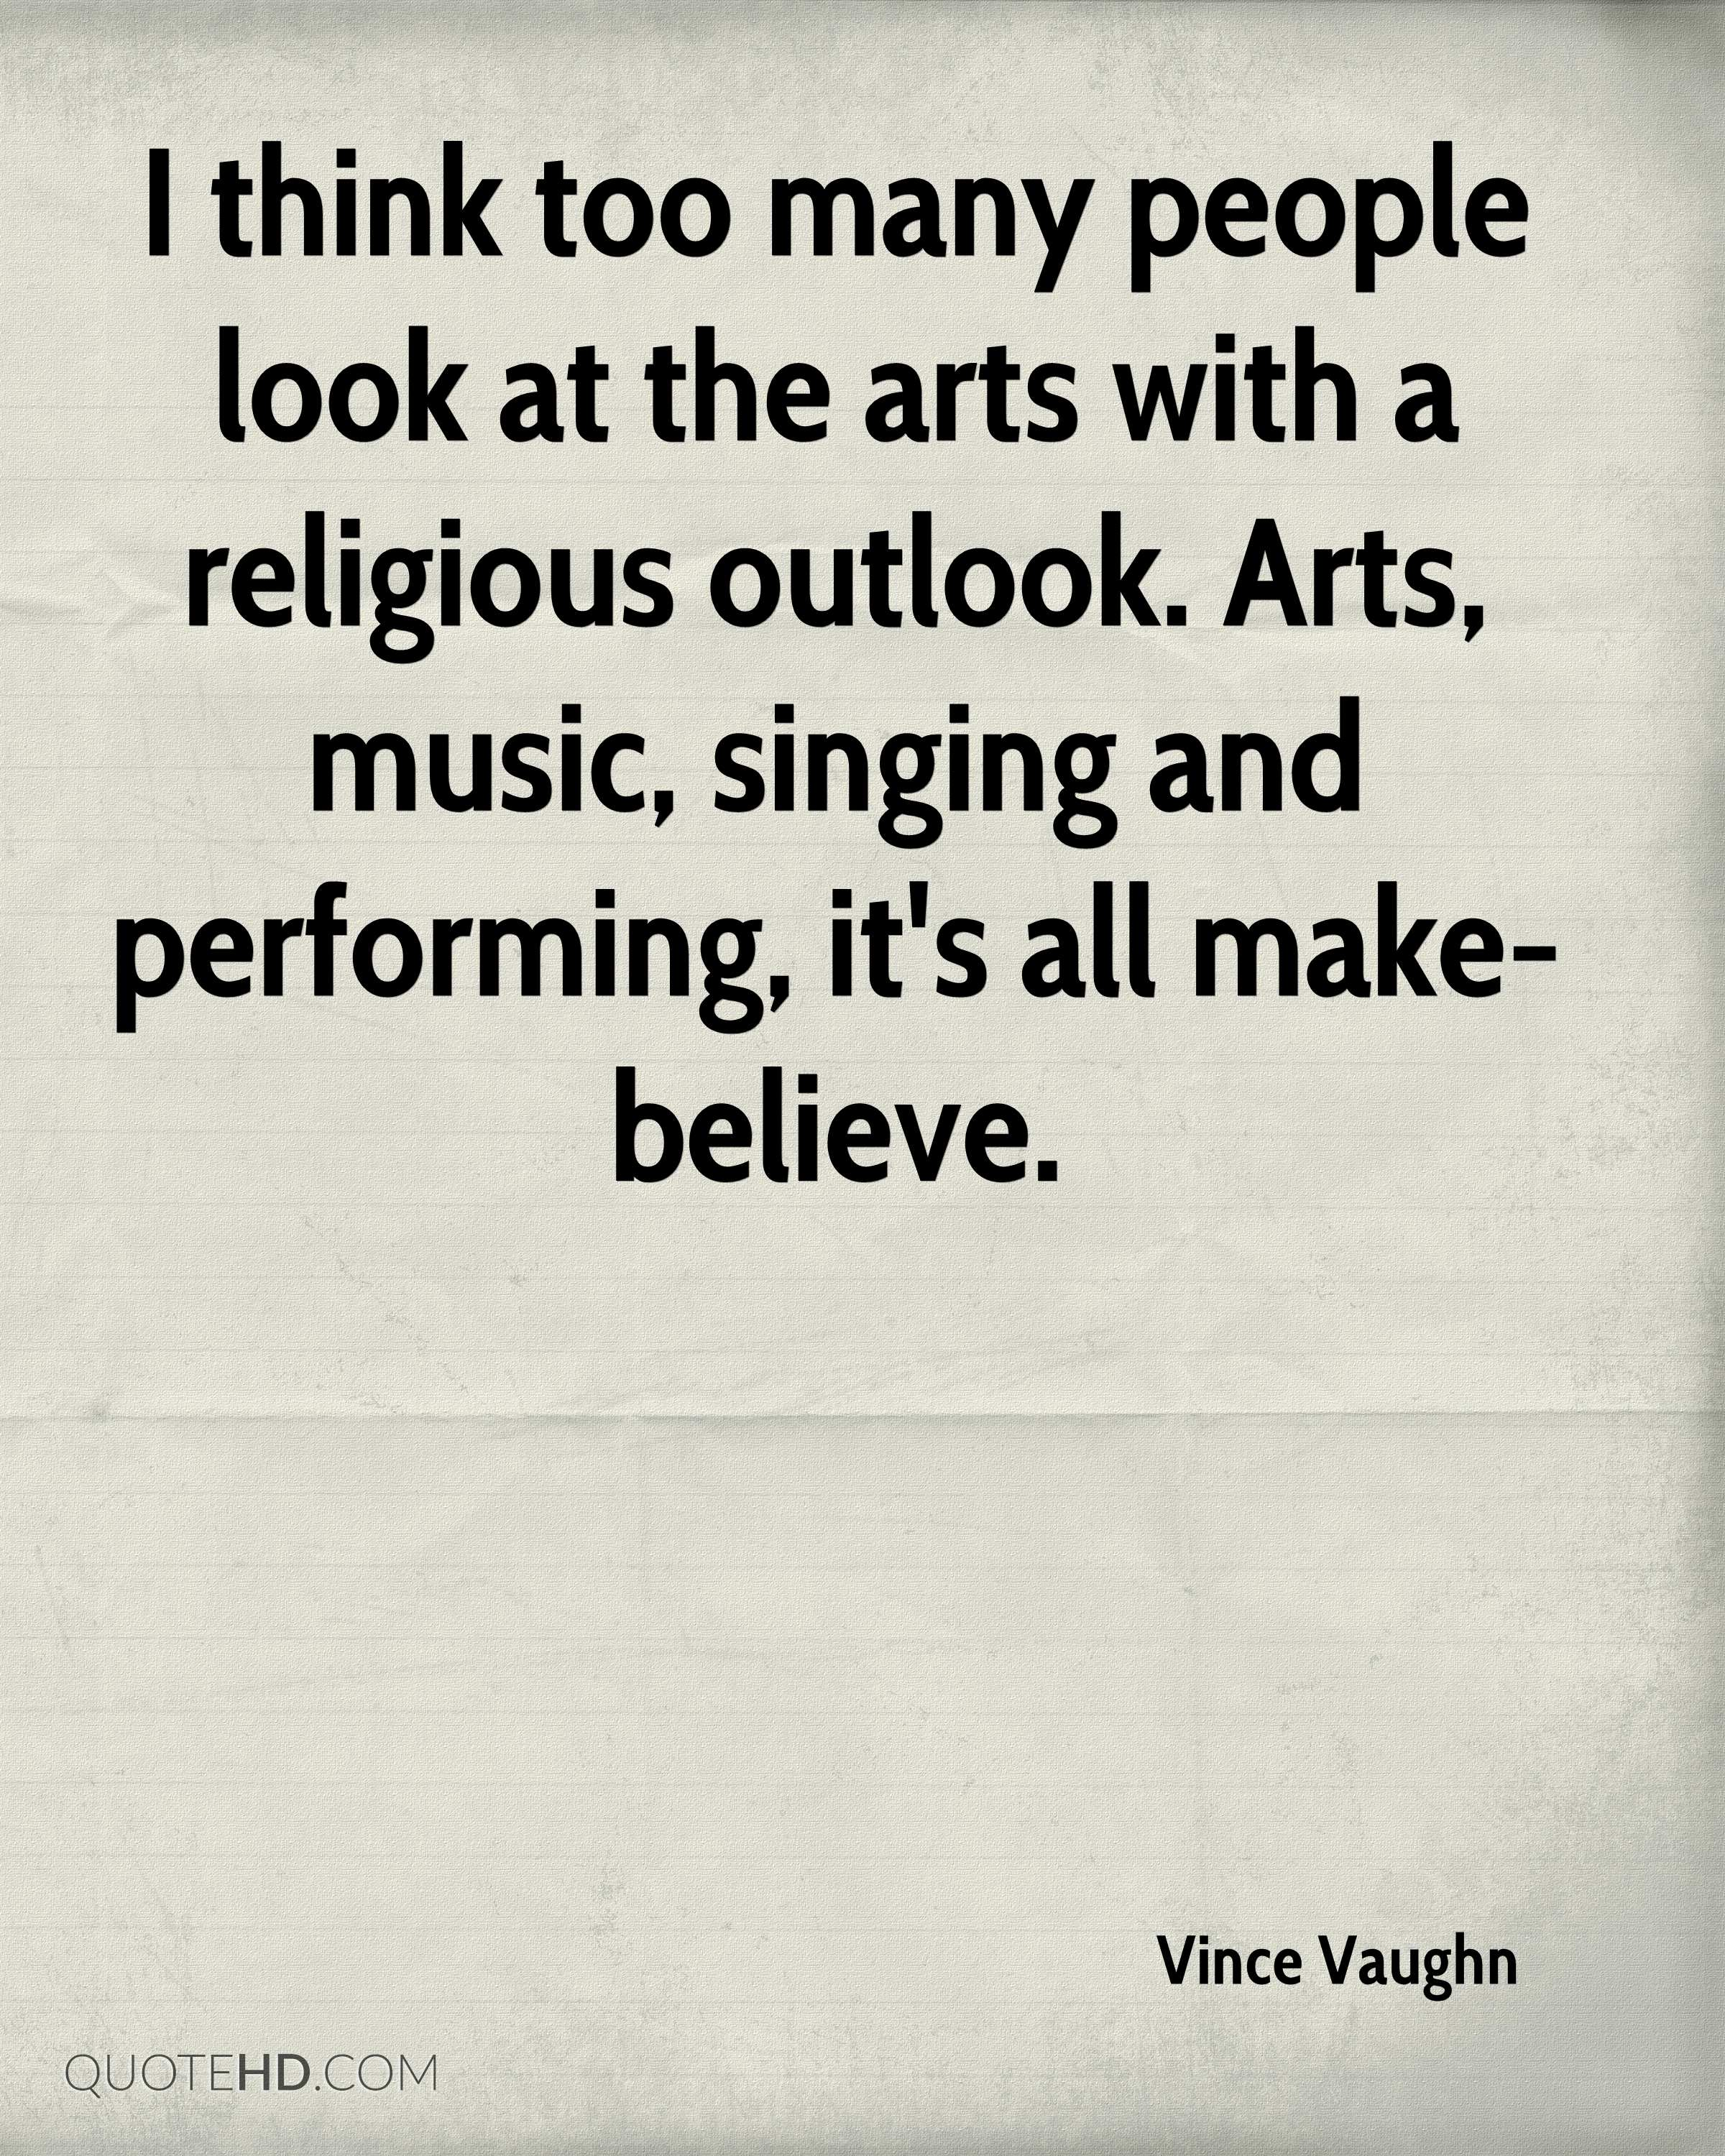 I think too many people look at the arts with a religious outlook. Arts, music, singing and performing, it's all make-believe.